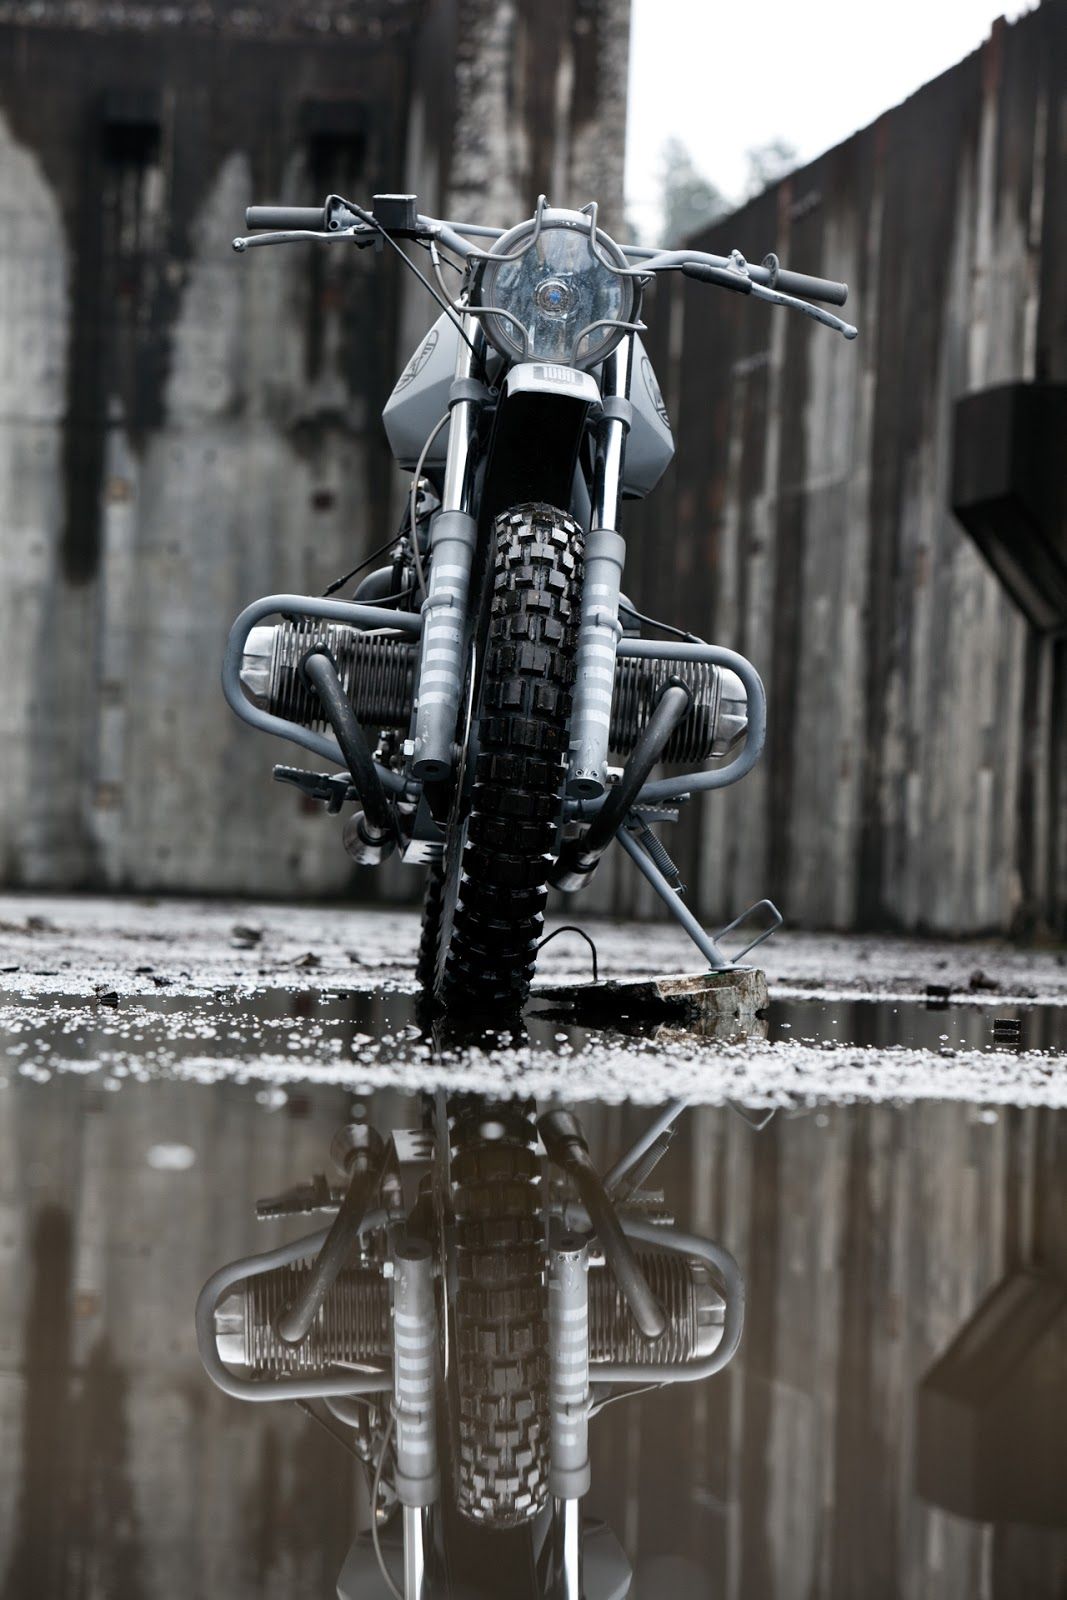 Quartermaster Motorcycle [ Quartermaster Motorcycle price yet to be announced ] The Quartermaster Motorcycle is a URAL x ICON collaborative project designed to increase the long distance off-road capacity of the URAL Solo.